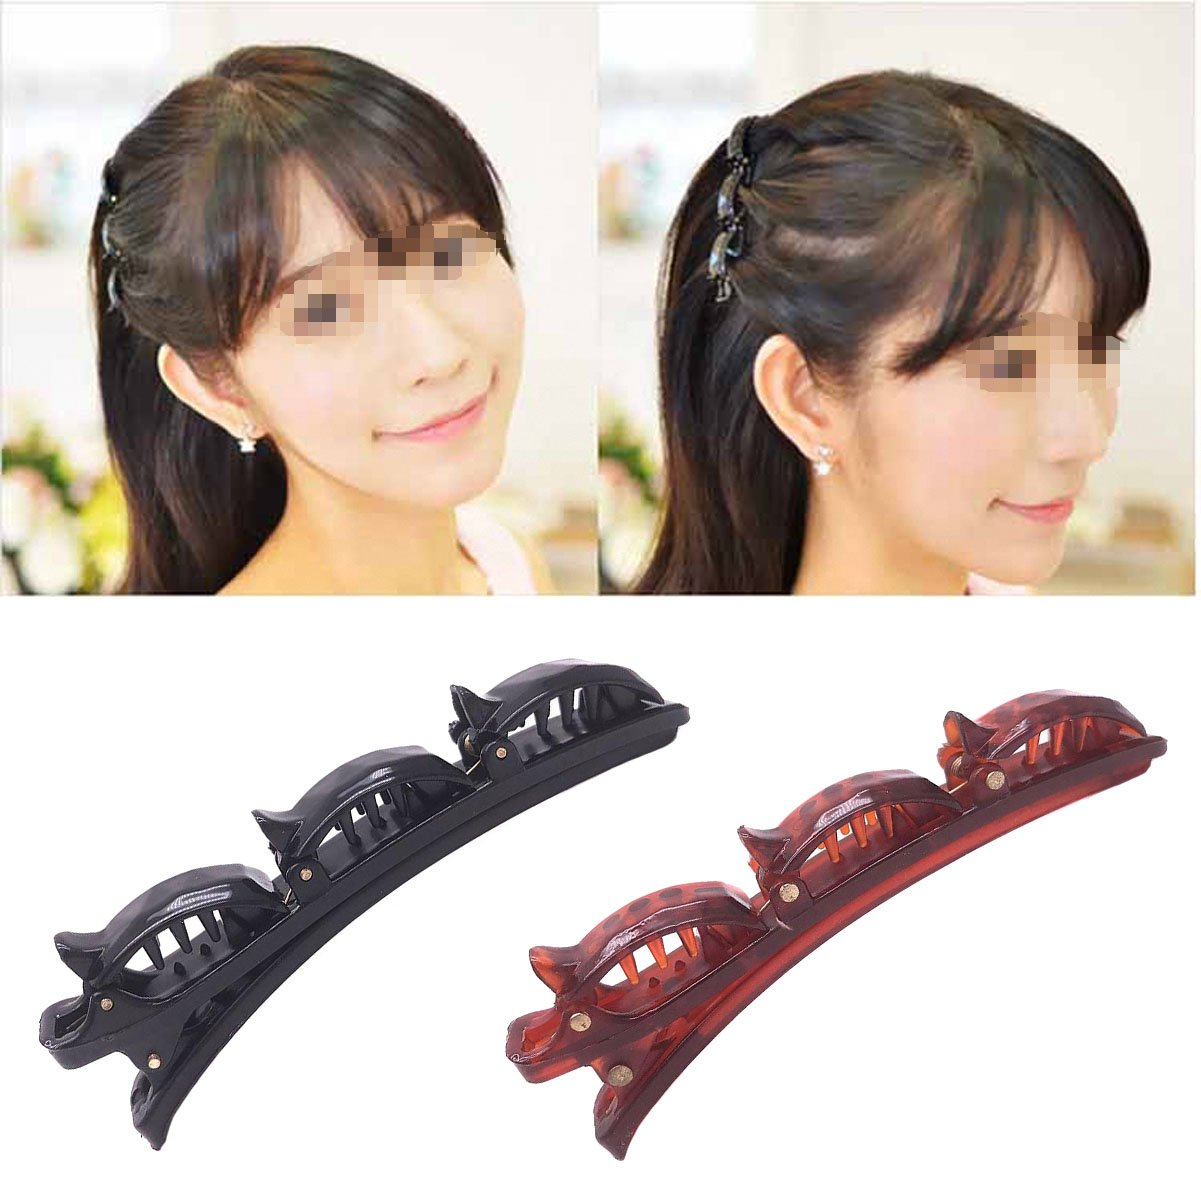 2 Pcs Women Girls Double Layer Band Twist Plait Plate Hair Clip Pins - Fashion Headband Magic Braid Front Hair Clips Hairpin - Hair Styling Accessory Tools - Black + Brown Numblartd